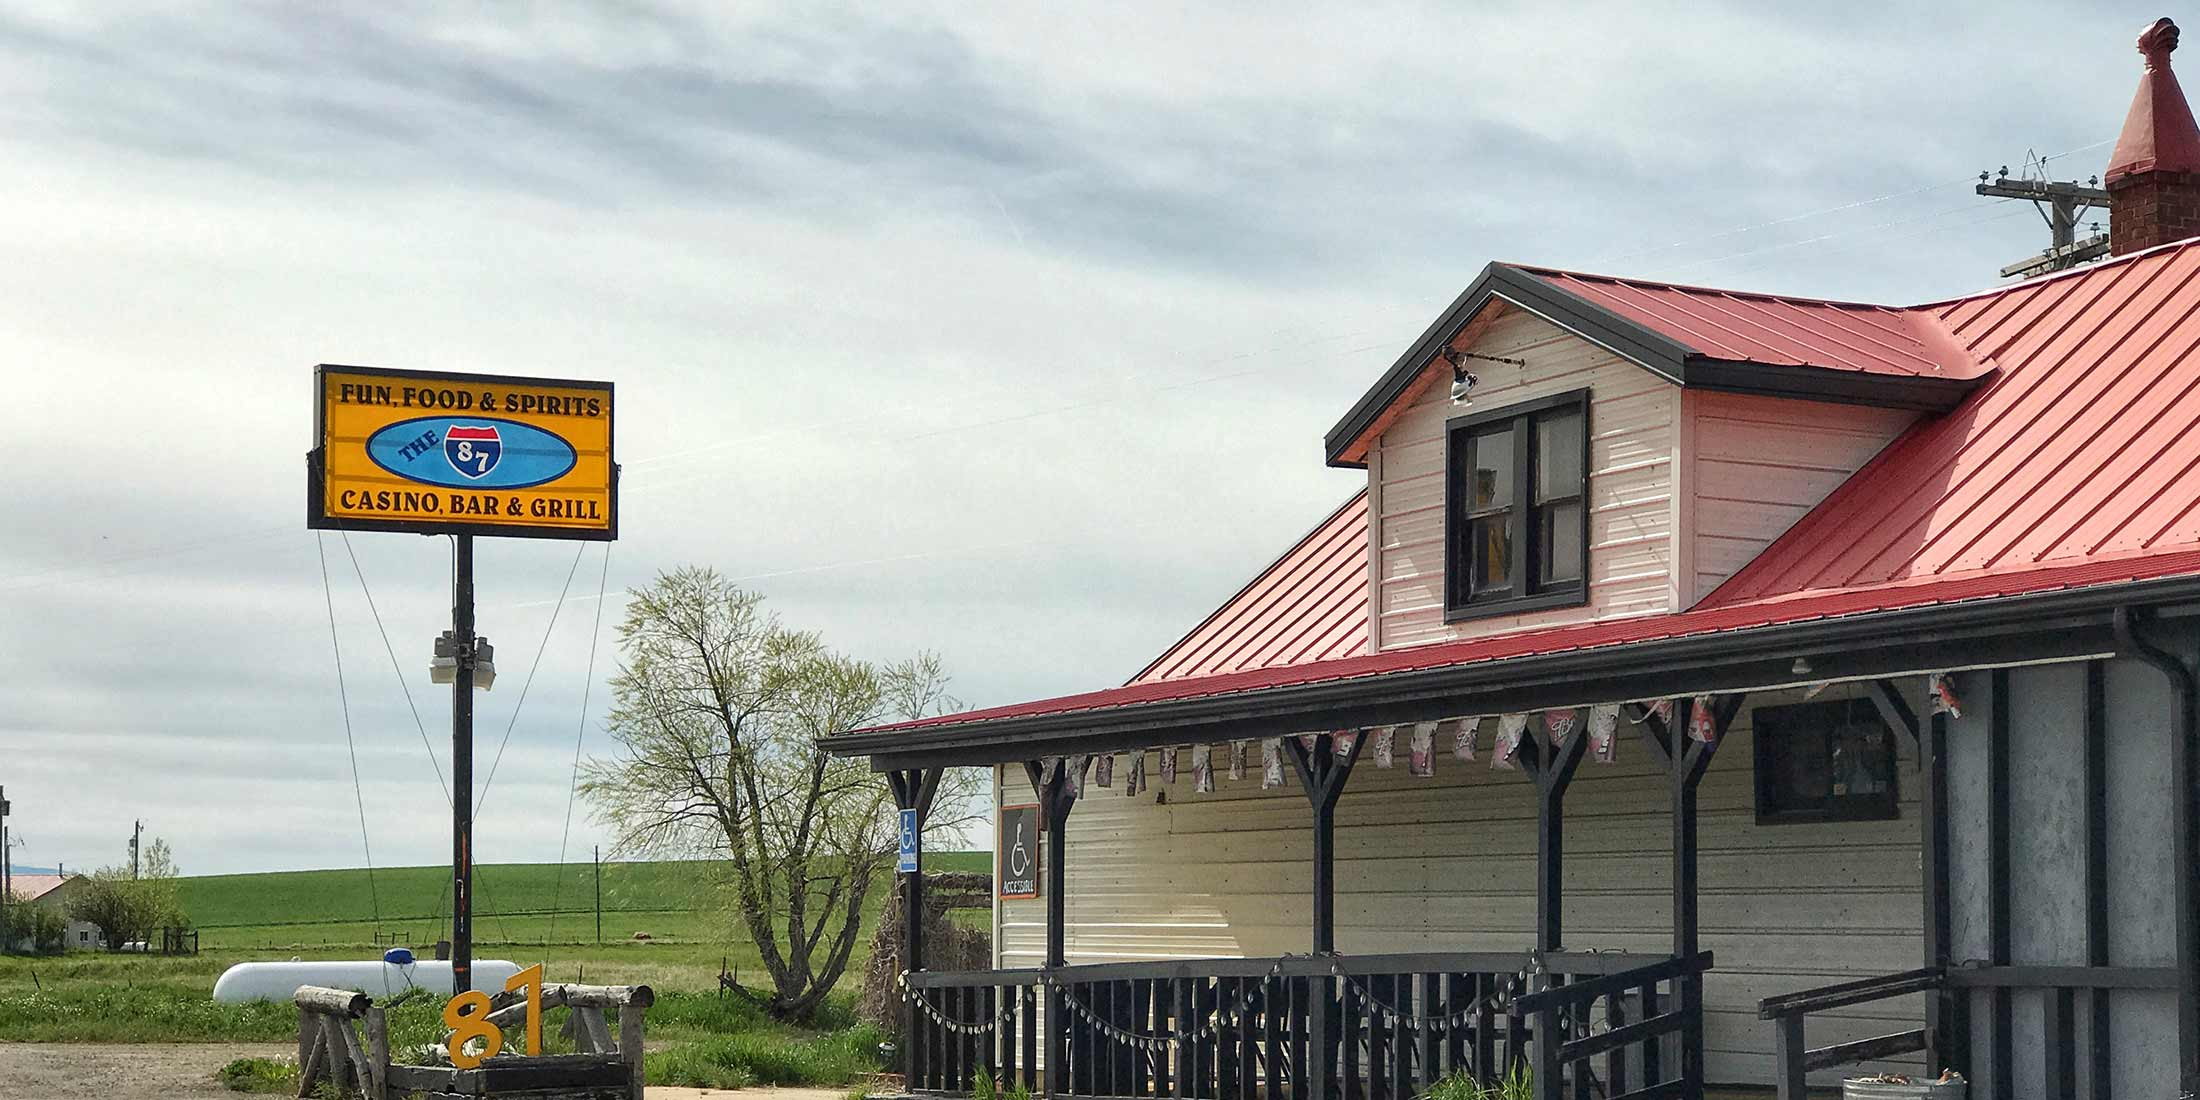 The Bar 87 is located in Windham, Montana on Highway 87 in Judith Basin County.